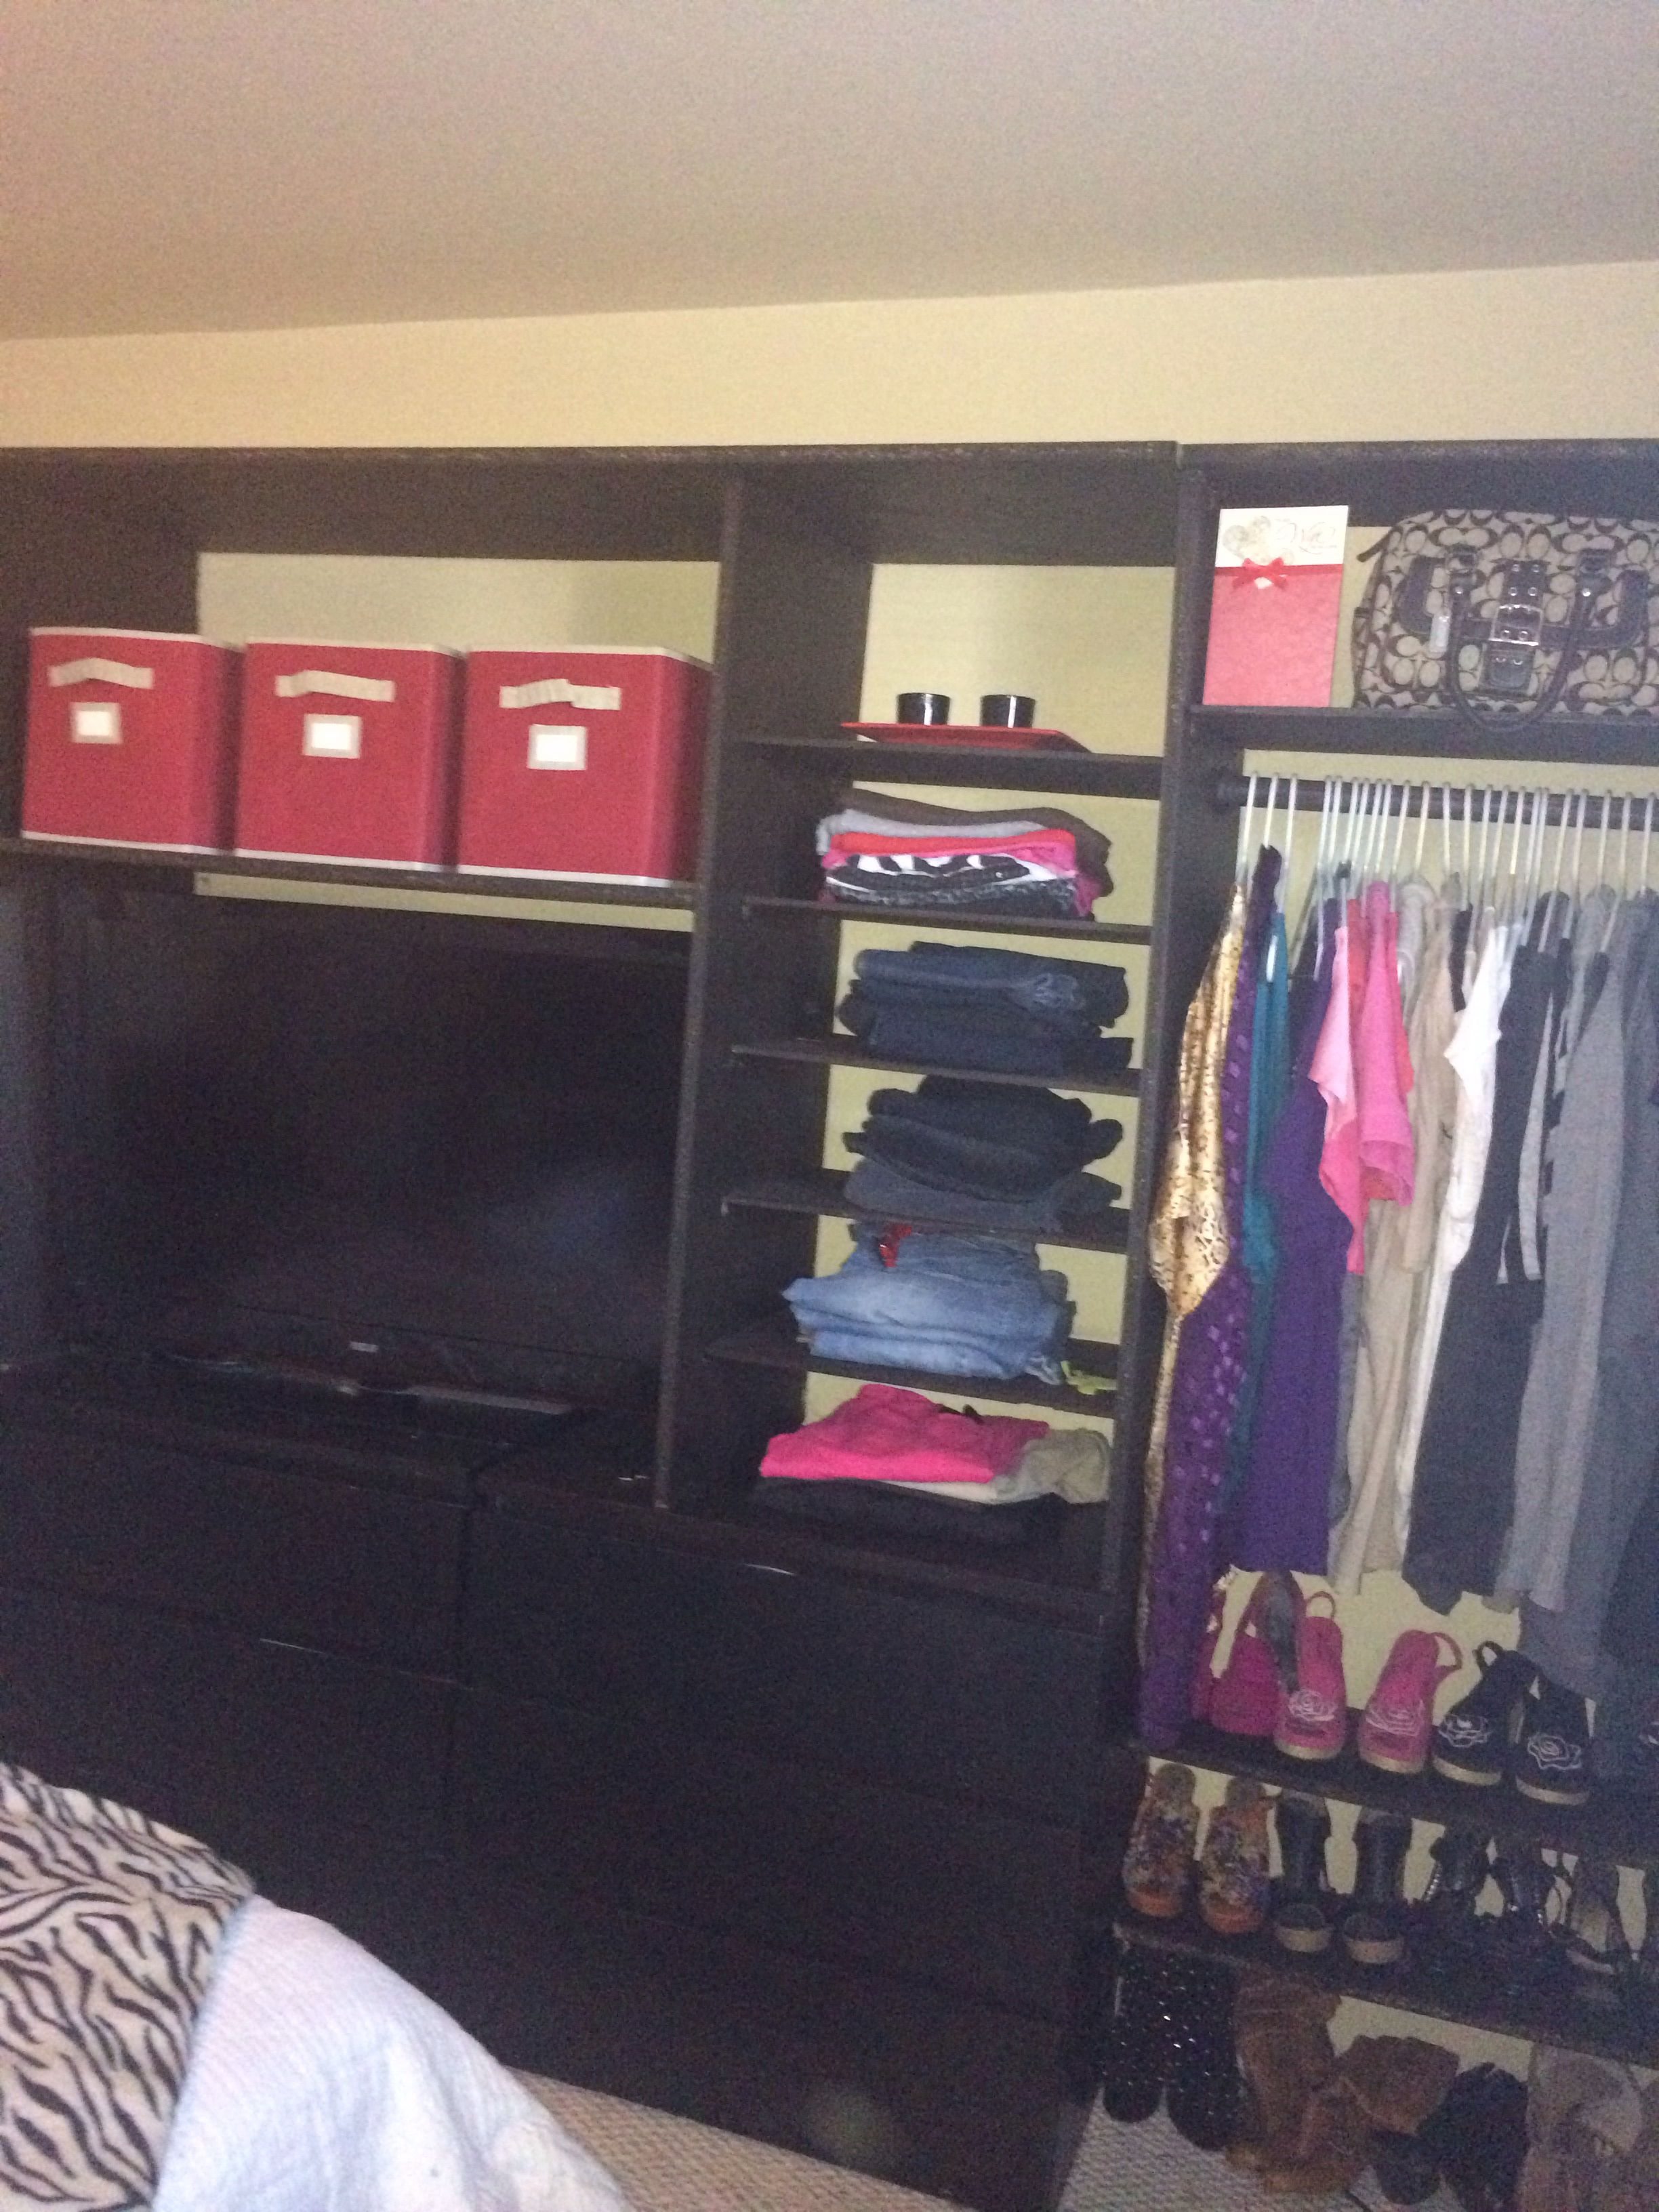 Handmade Closet Organizer It Cost Less Then 130 00 To Make This Whole Thing Great For Little Closet In Bedro Closet Organization Closet Bedroom Closet Space